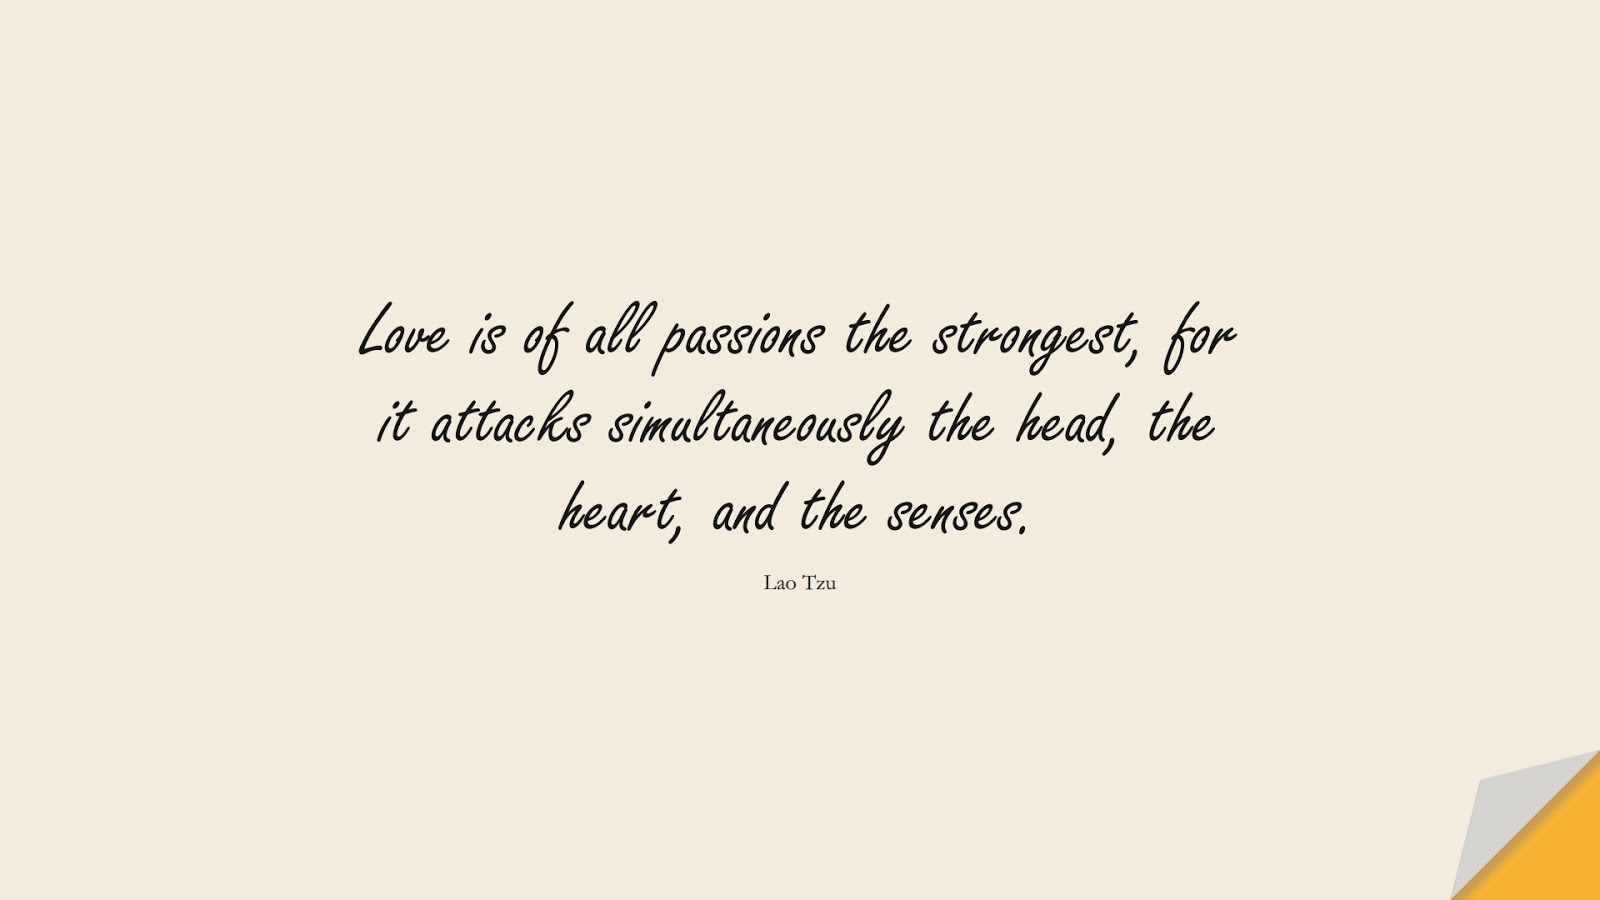 Love is of all passions the strongest, for it attacks simultaneously the head, the heart, and the senses. (Lao Tzu);  #LoveQuotes